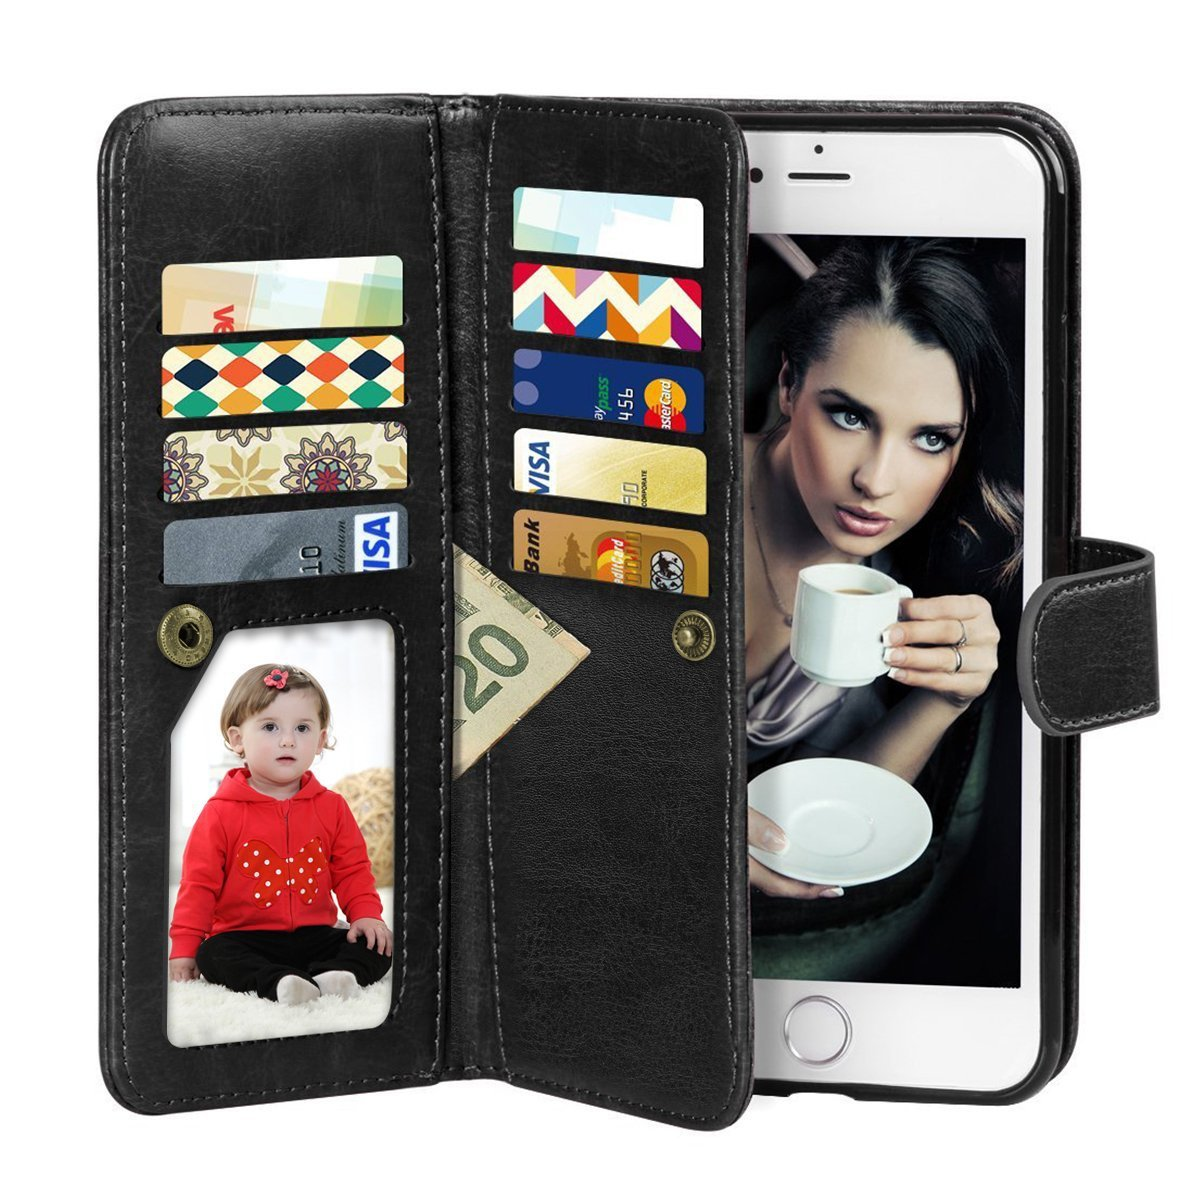 Vofolen 2-in-1 Case for iPhone 6 Case iPhone 6S Case Wallet Folio Flip PU Leather Case Protective Hard Shell Magnetic Detachable Slim Back Cover with Card Holder Slot Wrist Strap for iPhone 6 6S Black by Vofolen